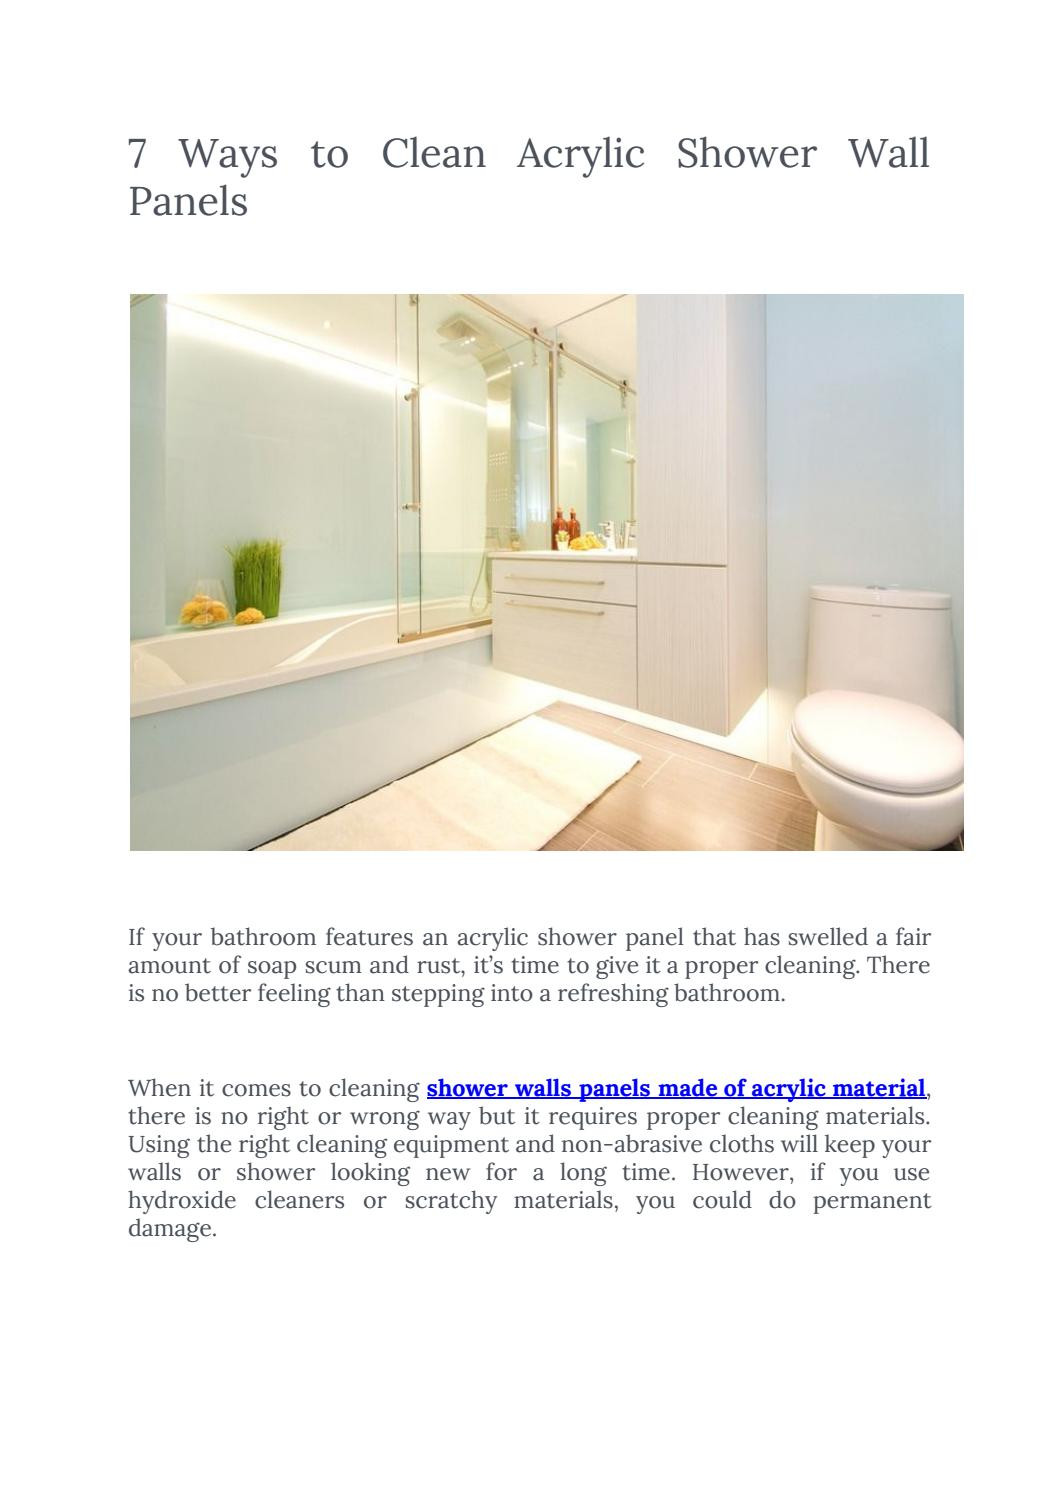 7 Ways To Clean Acrylic Shower Wall Panels By Sheet Plastics Issuu